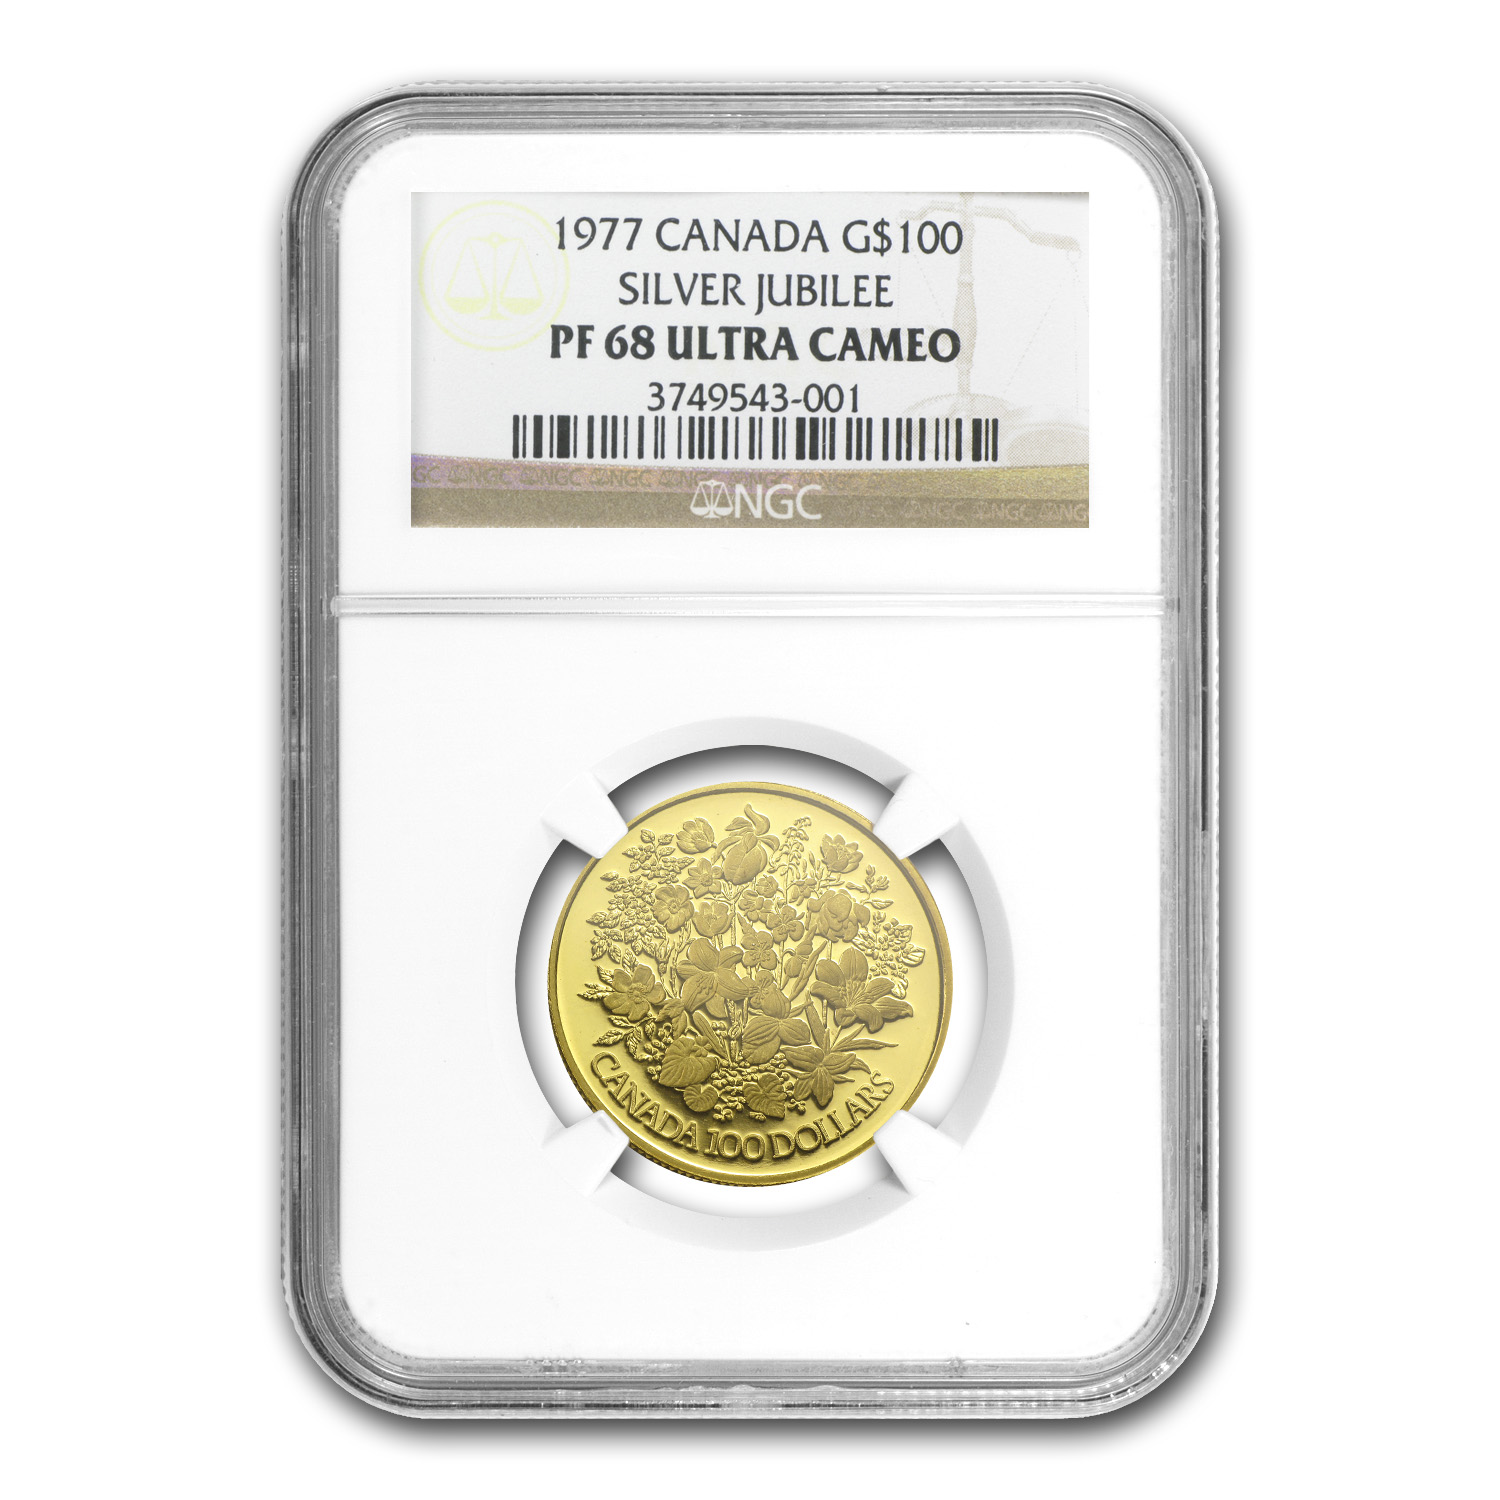 1977 1/2 oz Gold Canadian $100 Silver Jubilee PF-68 NGC